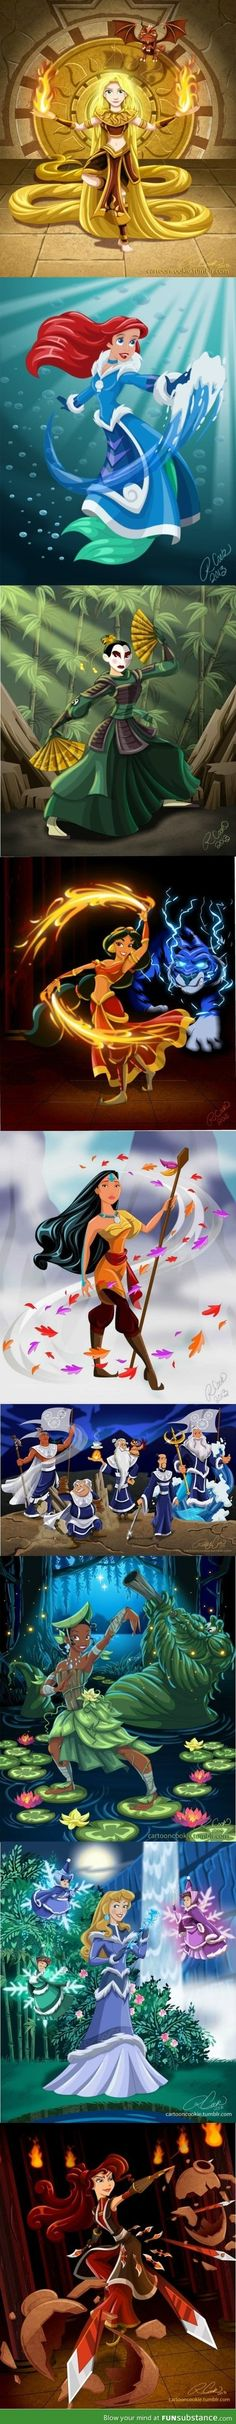 Disney, Avatar the Last Airbender crossover Walt Disney, Disney Magic, Disney Art, Disney Stuff, Images Disney, Disney Pictures, Disney Memes, Disney Cartoons, Funny Disney